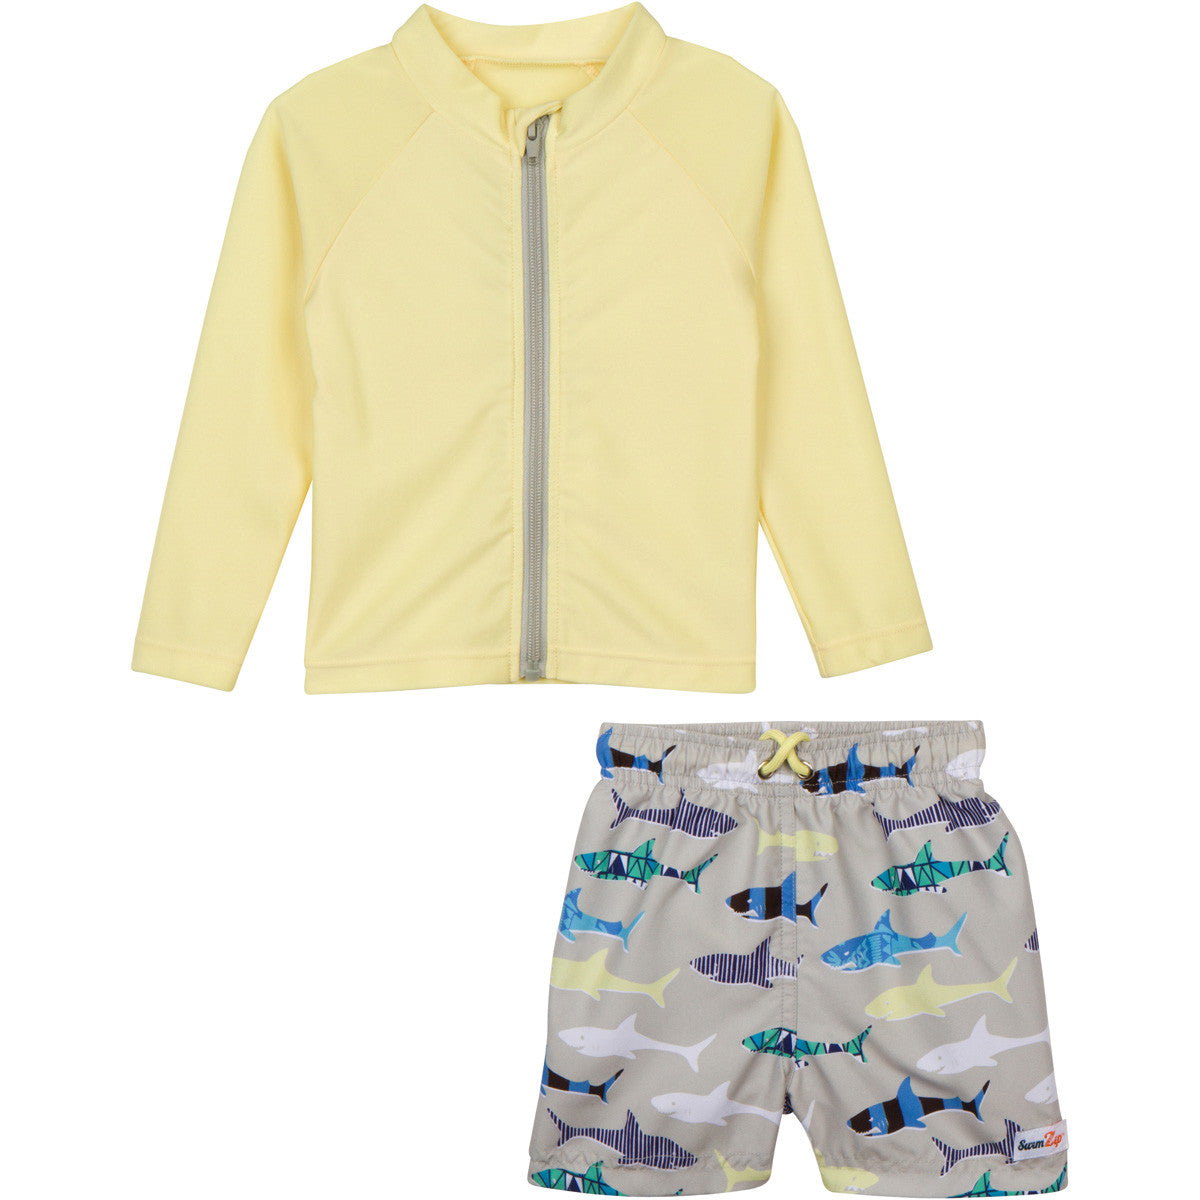 newborn boy rashguard set zipper zip swim shirt top by swimzip shark